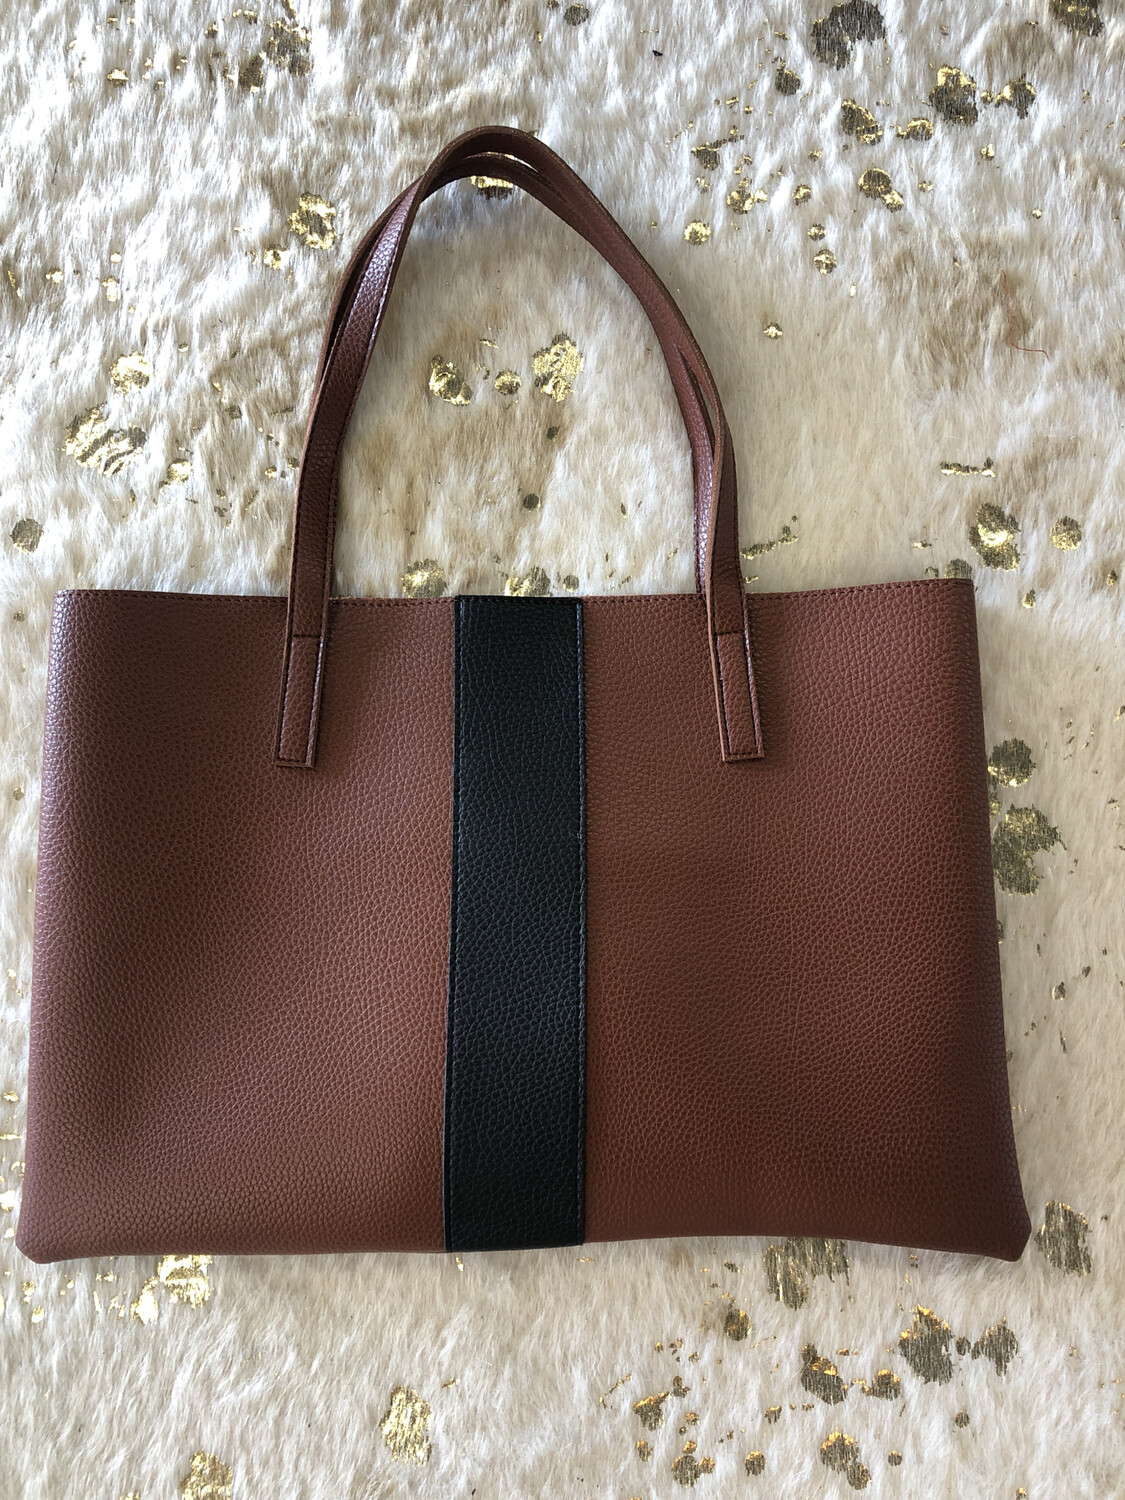 Vince Camuto Brown with Black Stripe Tote